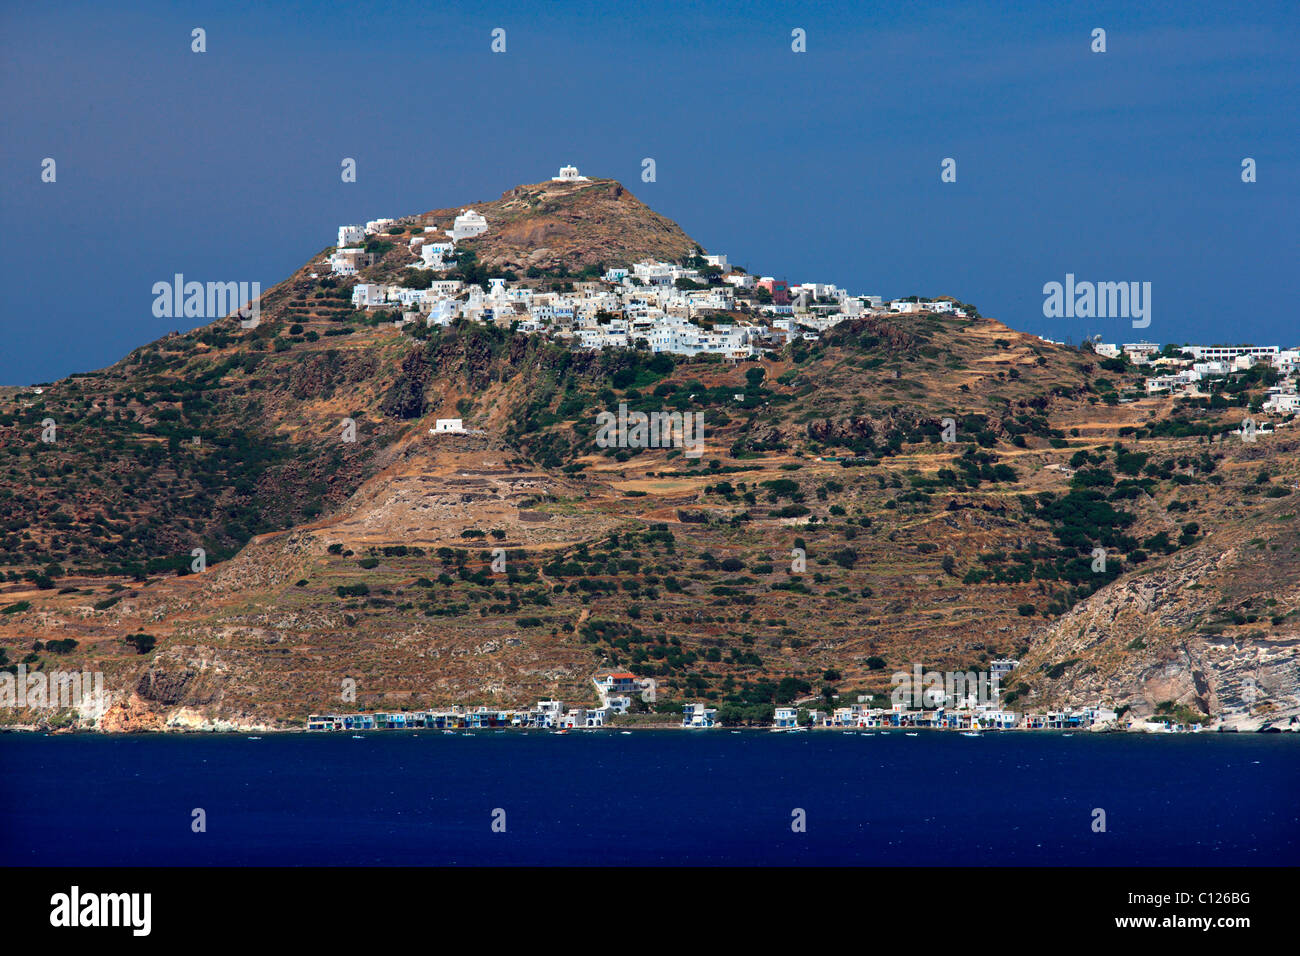 Greece, Milos island.  View of Plaka, Trypiti and Klima villages from Emboreios, on the opposite side of Milos Gulf - Stock Image